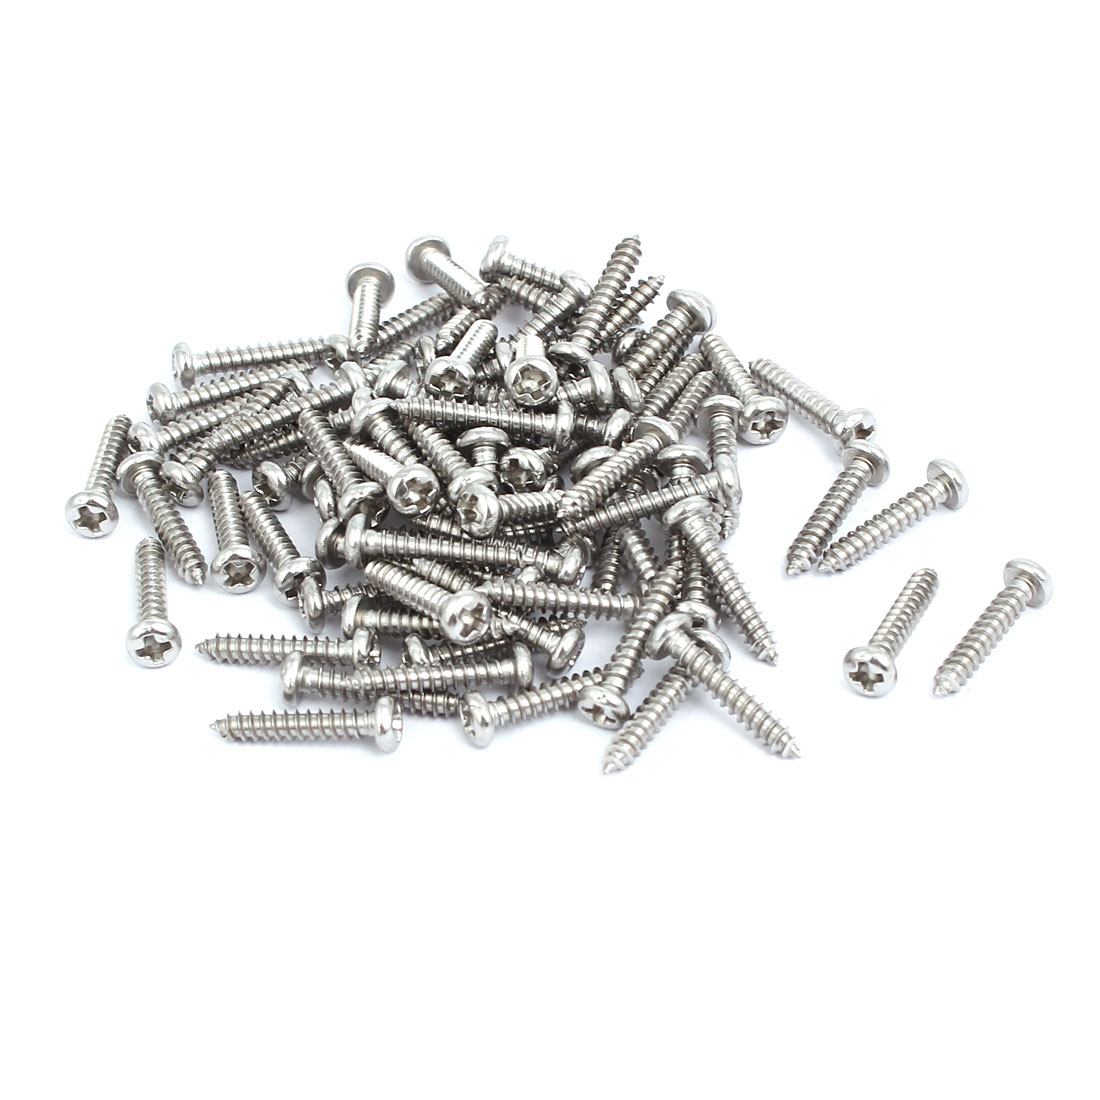 M3x16mm 304 Stainless Steel Phillips Drive Pan Head Self Tapping Screws 100pcs